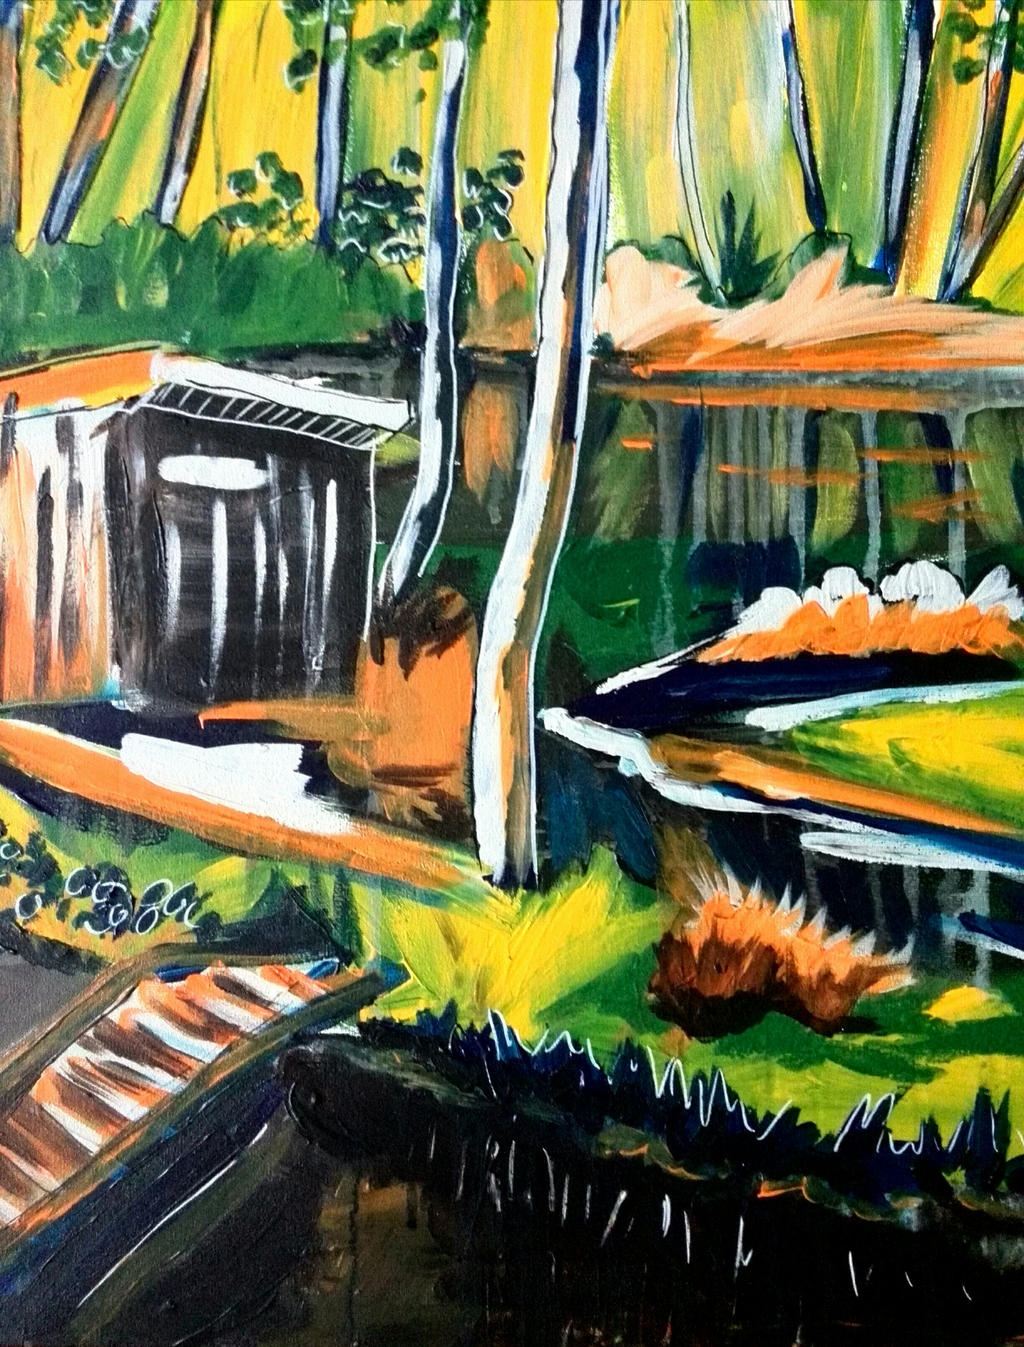 Fishpond by Milana87